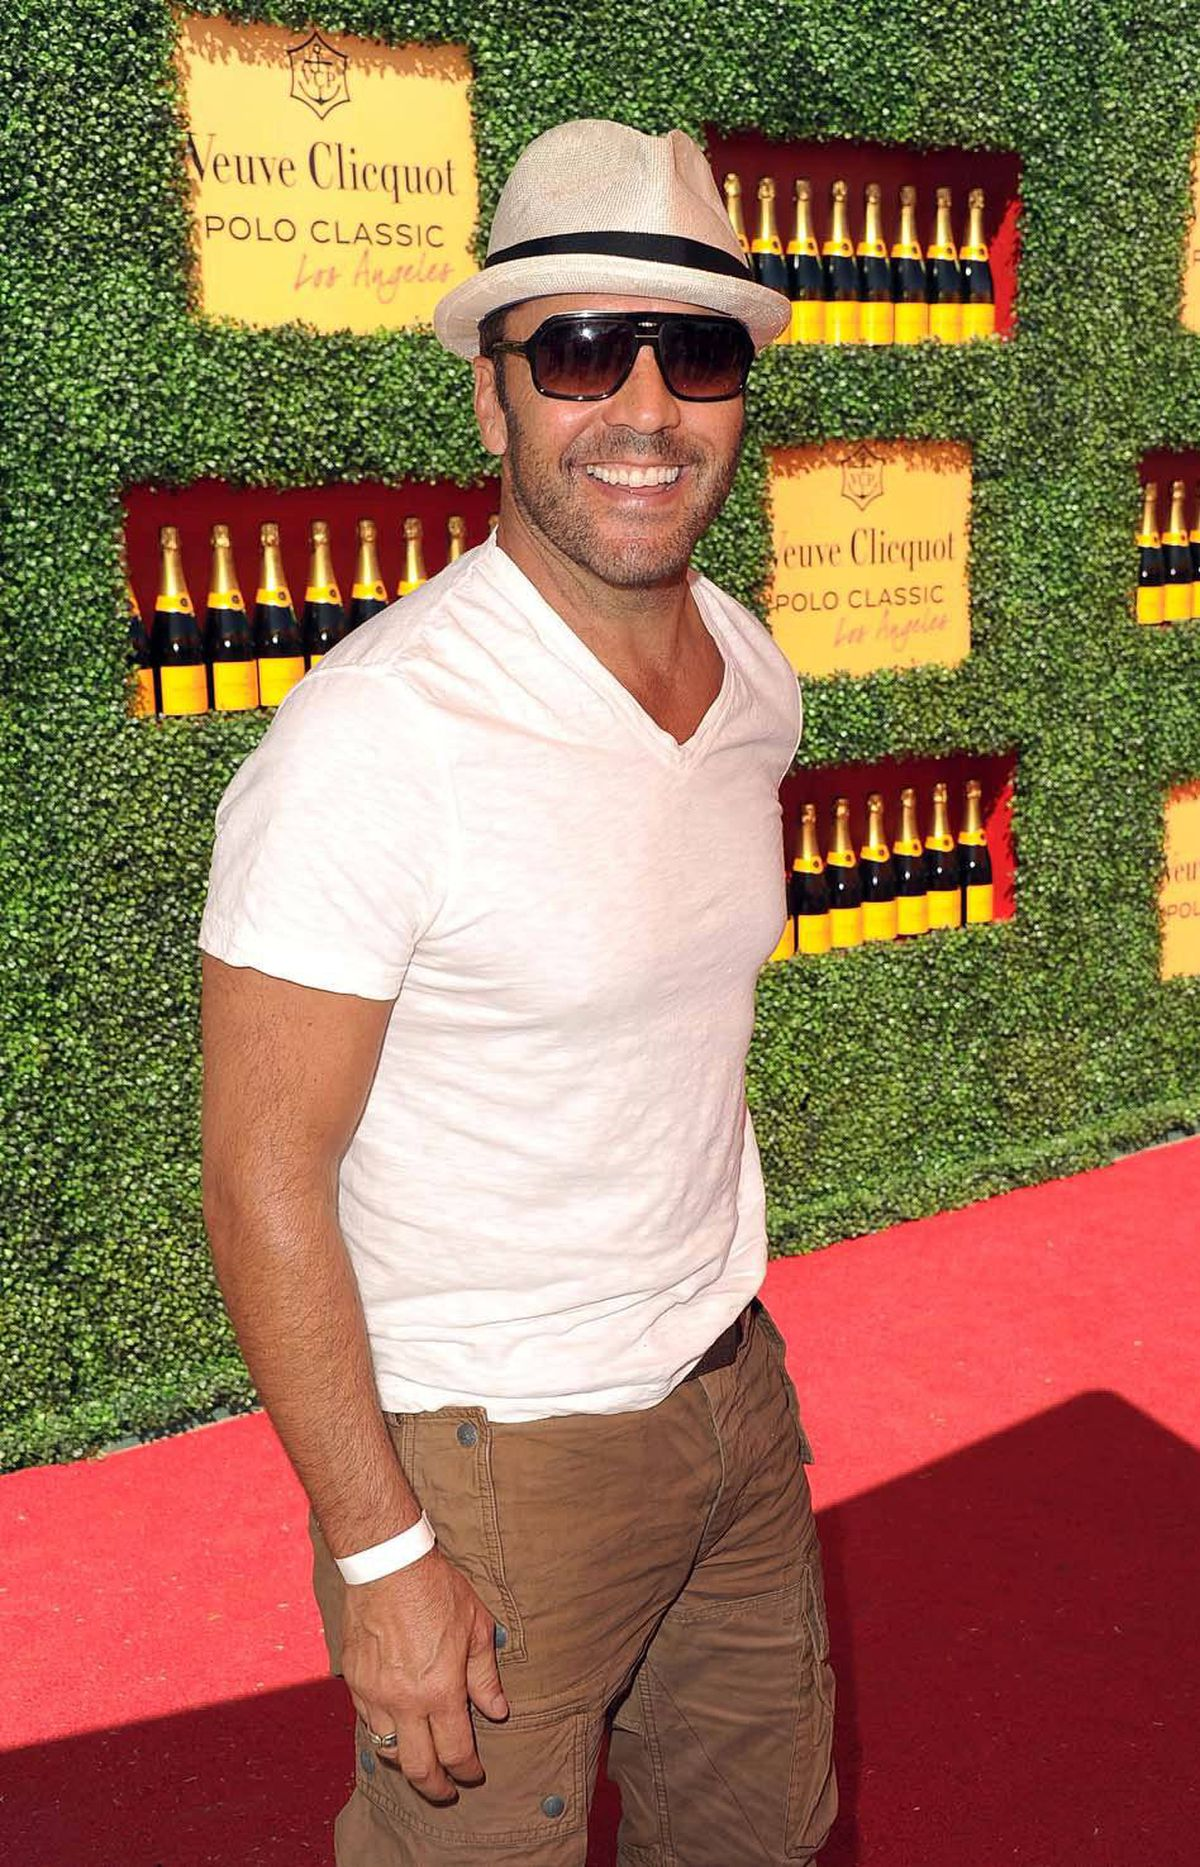 Actor Jeremy Piven strikes a blow for the disenfranchised at the Veuve Clicquot Polo Classic in Los Angeles on Sunday.